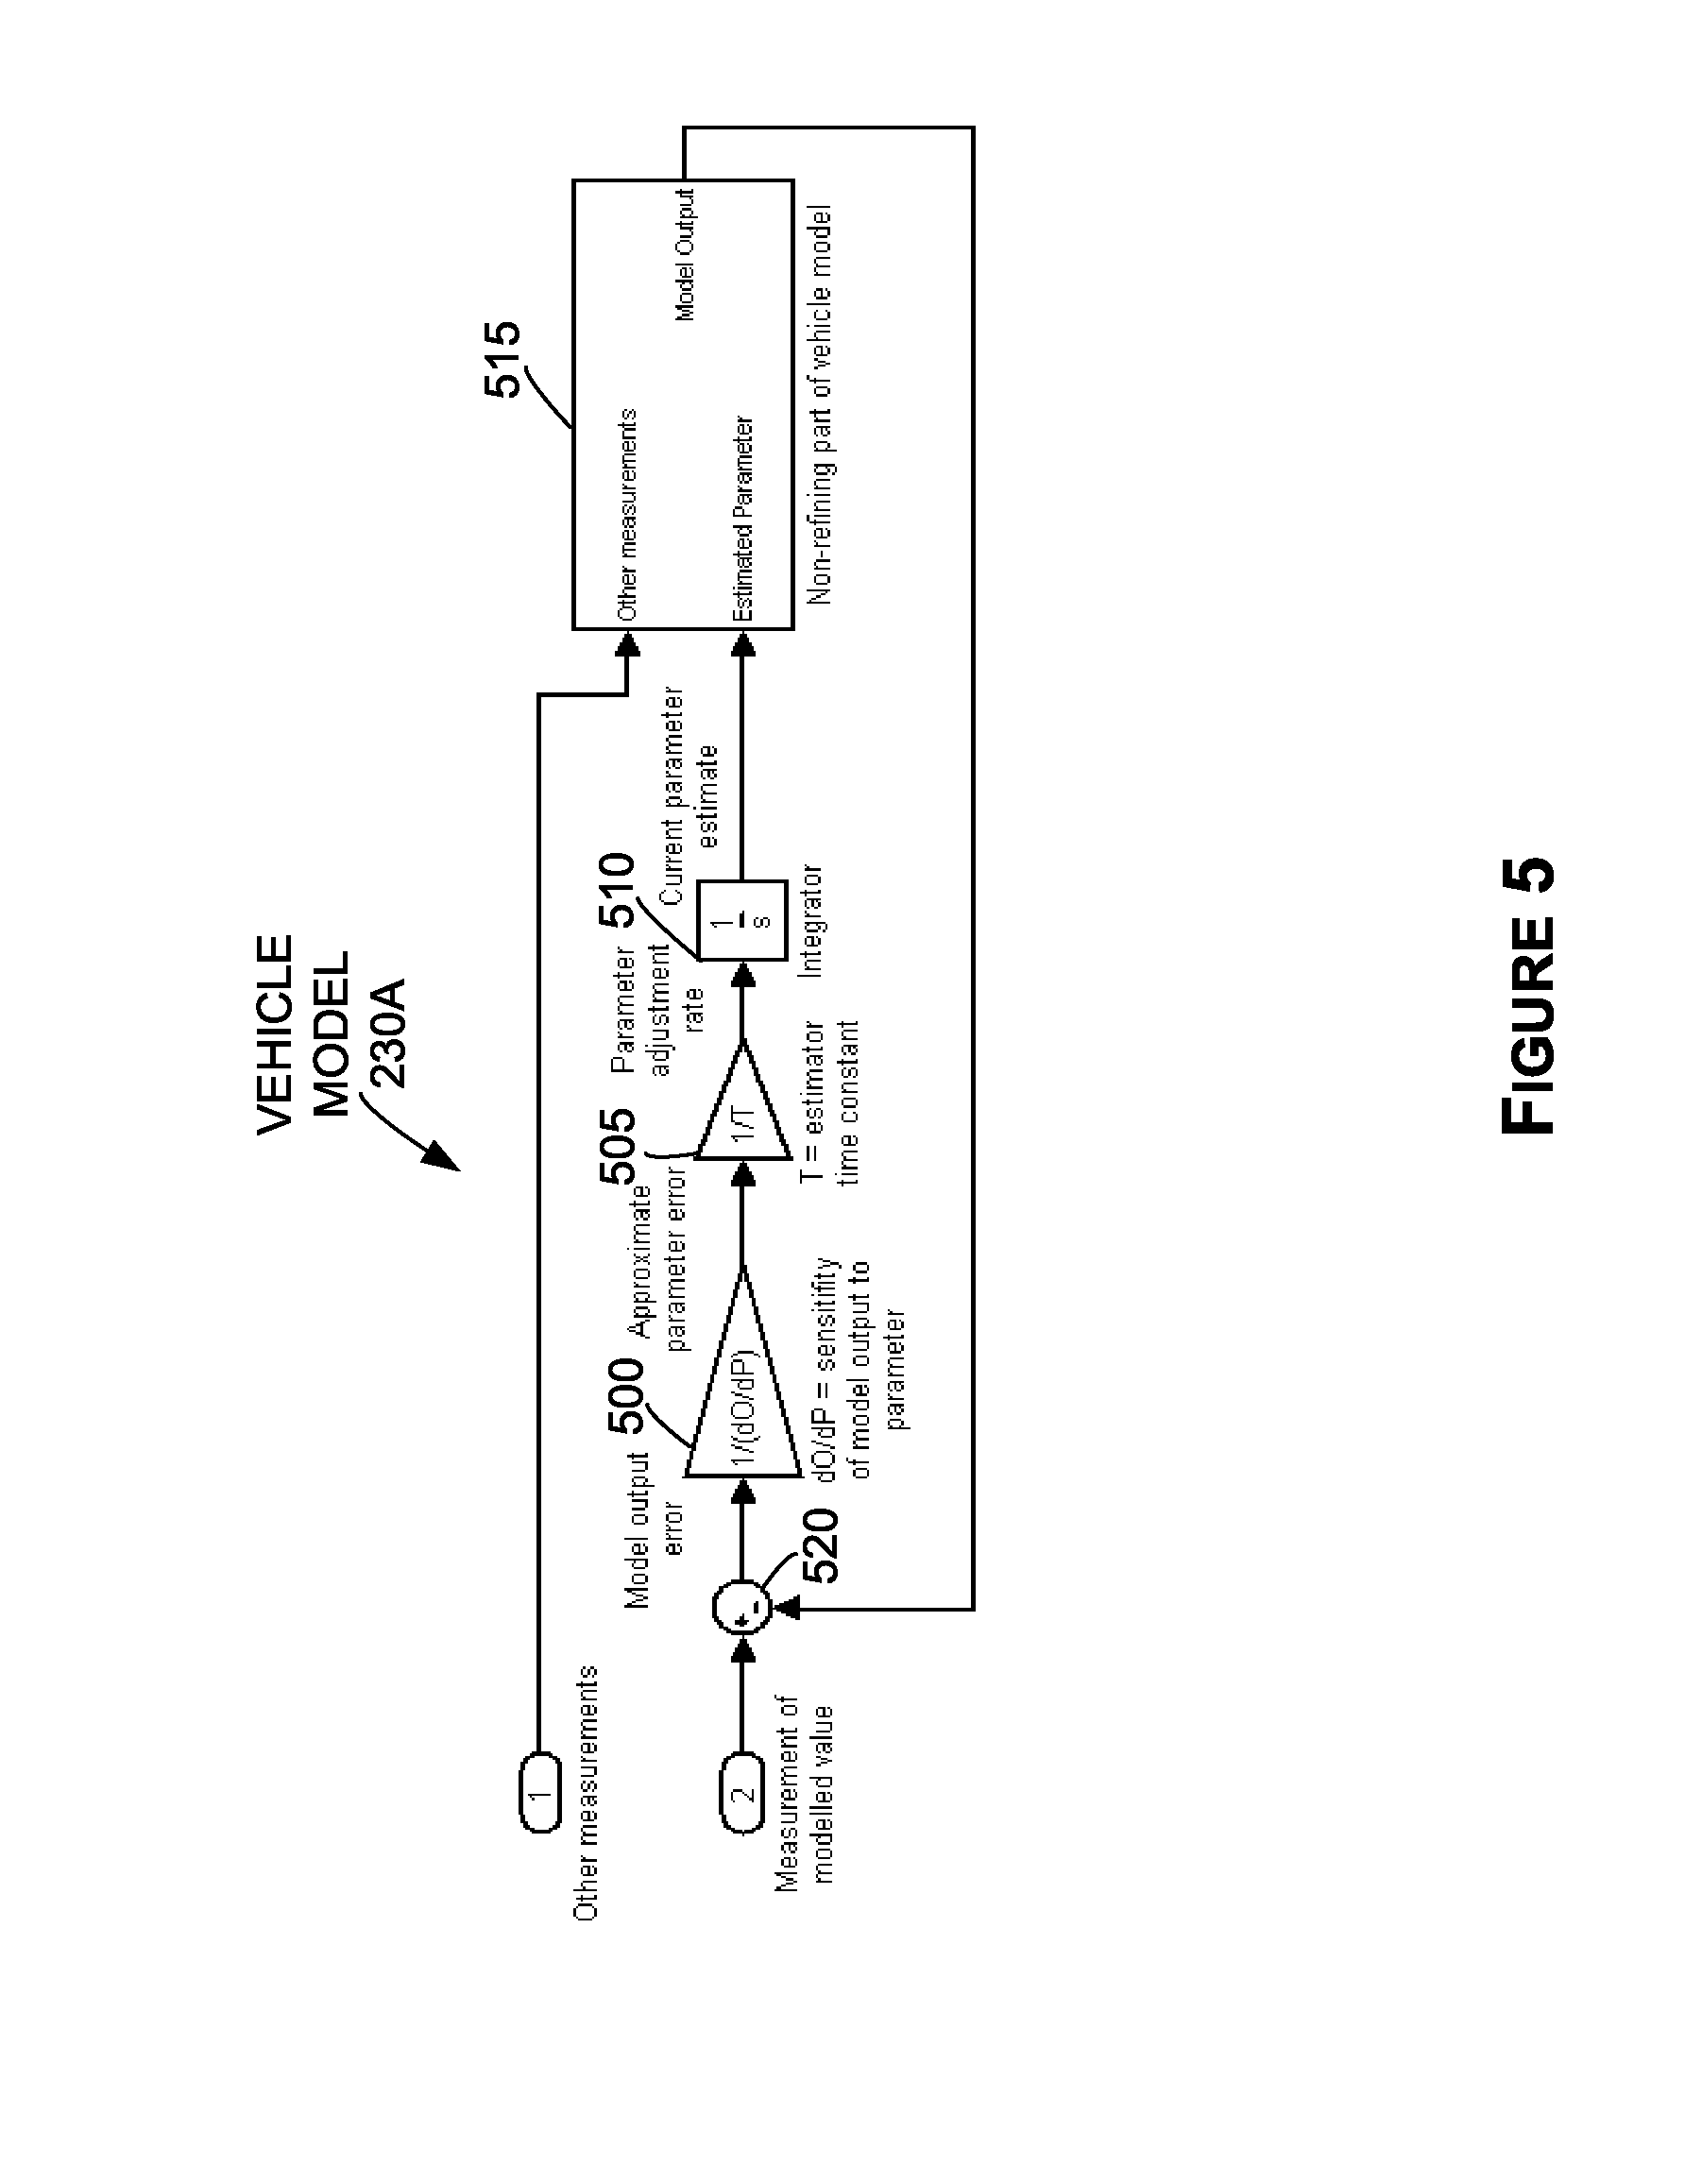 Solarenergy Charger Circuit Diagram Tradeoficcom Data Wiring Battery Backup 1 Patent Us20130261914 Vehicle Control System And Methods Google